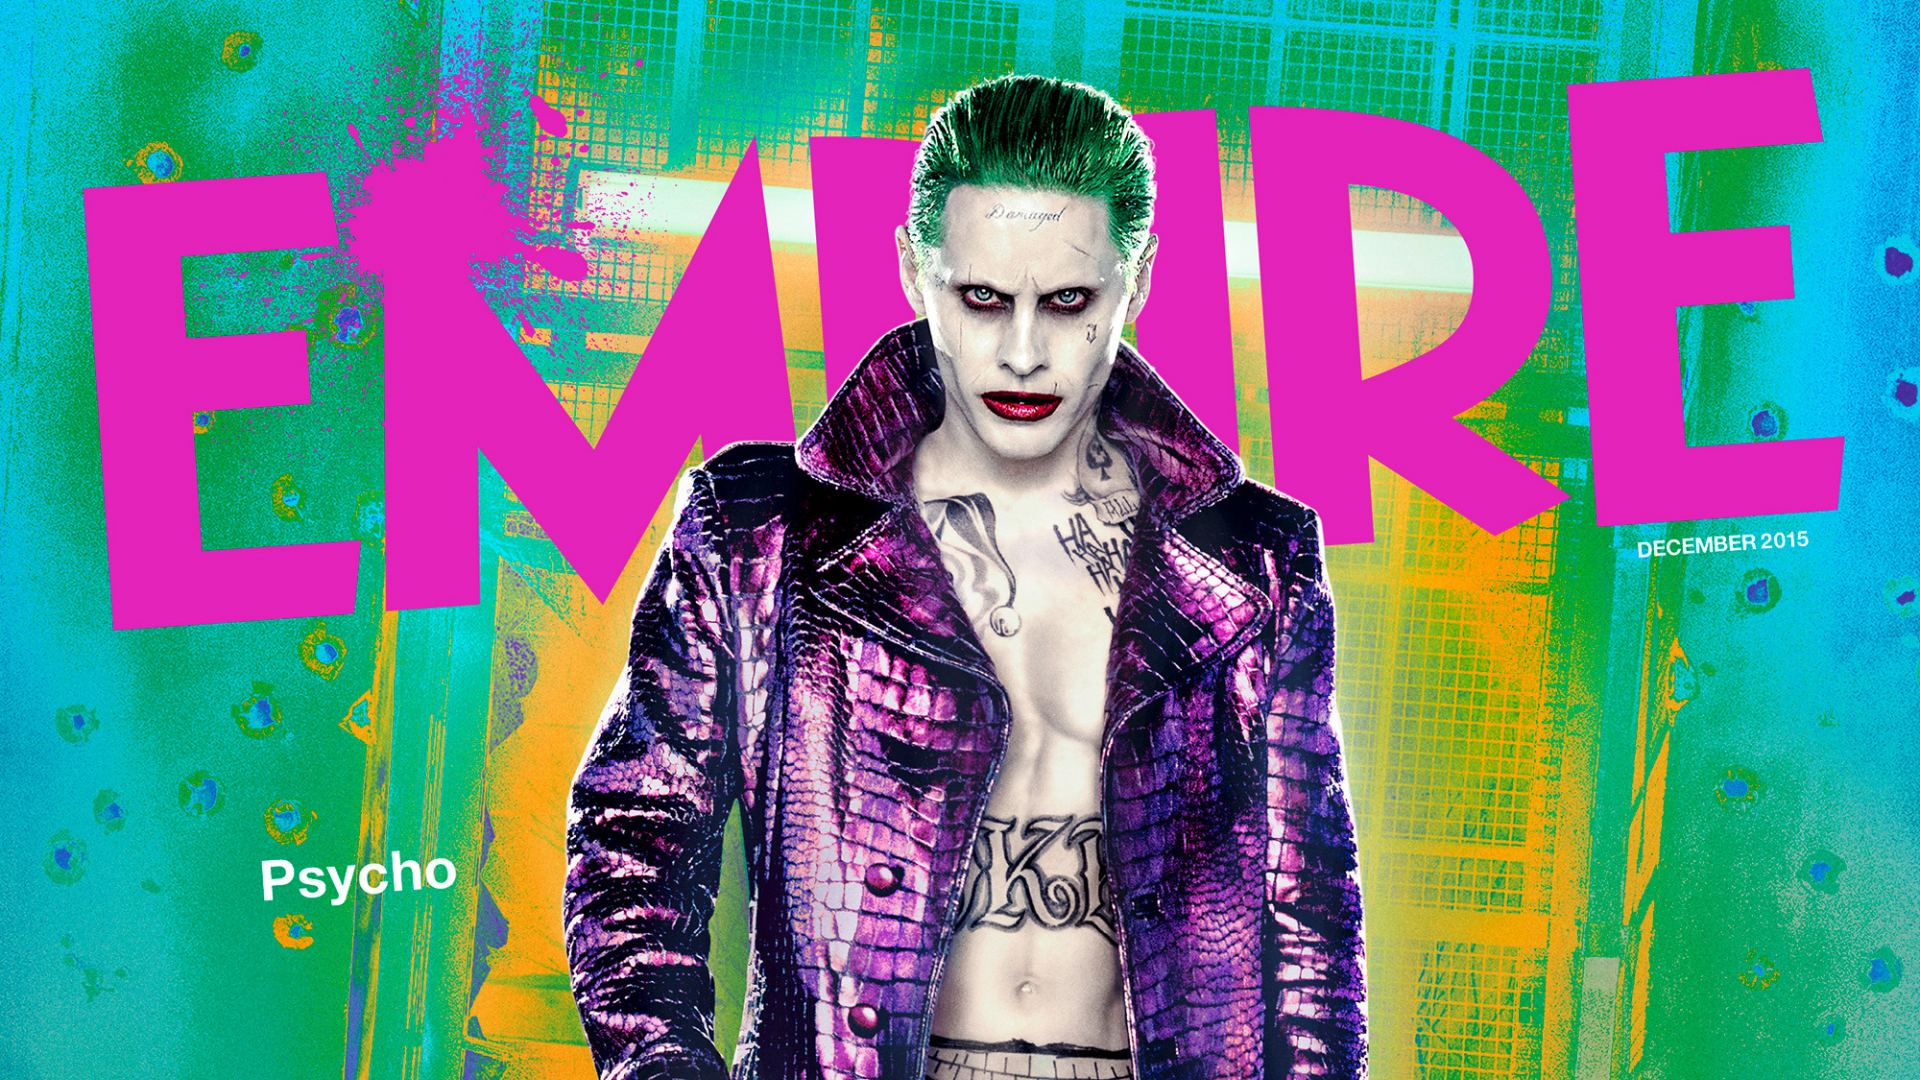 Jared Leto As The Joker In Suicide Squad Hd Wallpaper Background